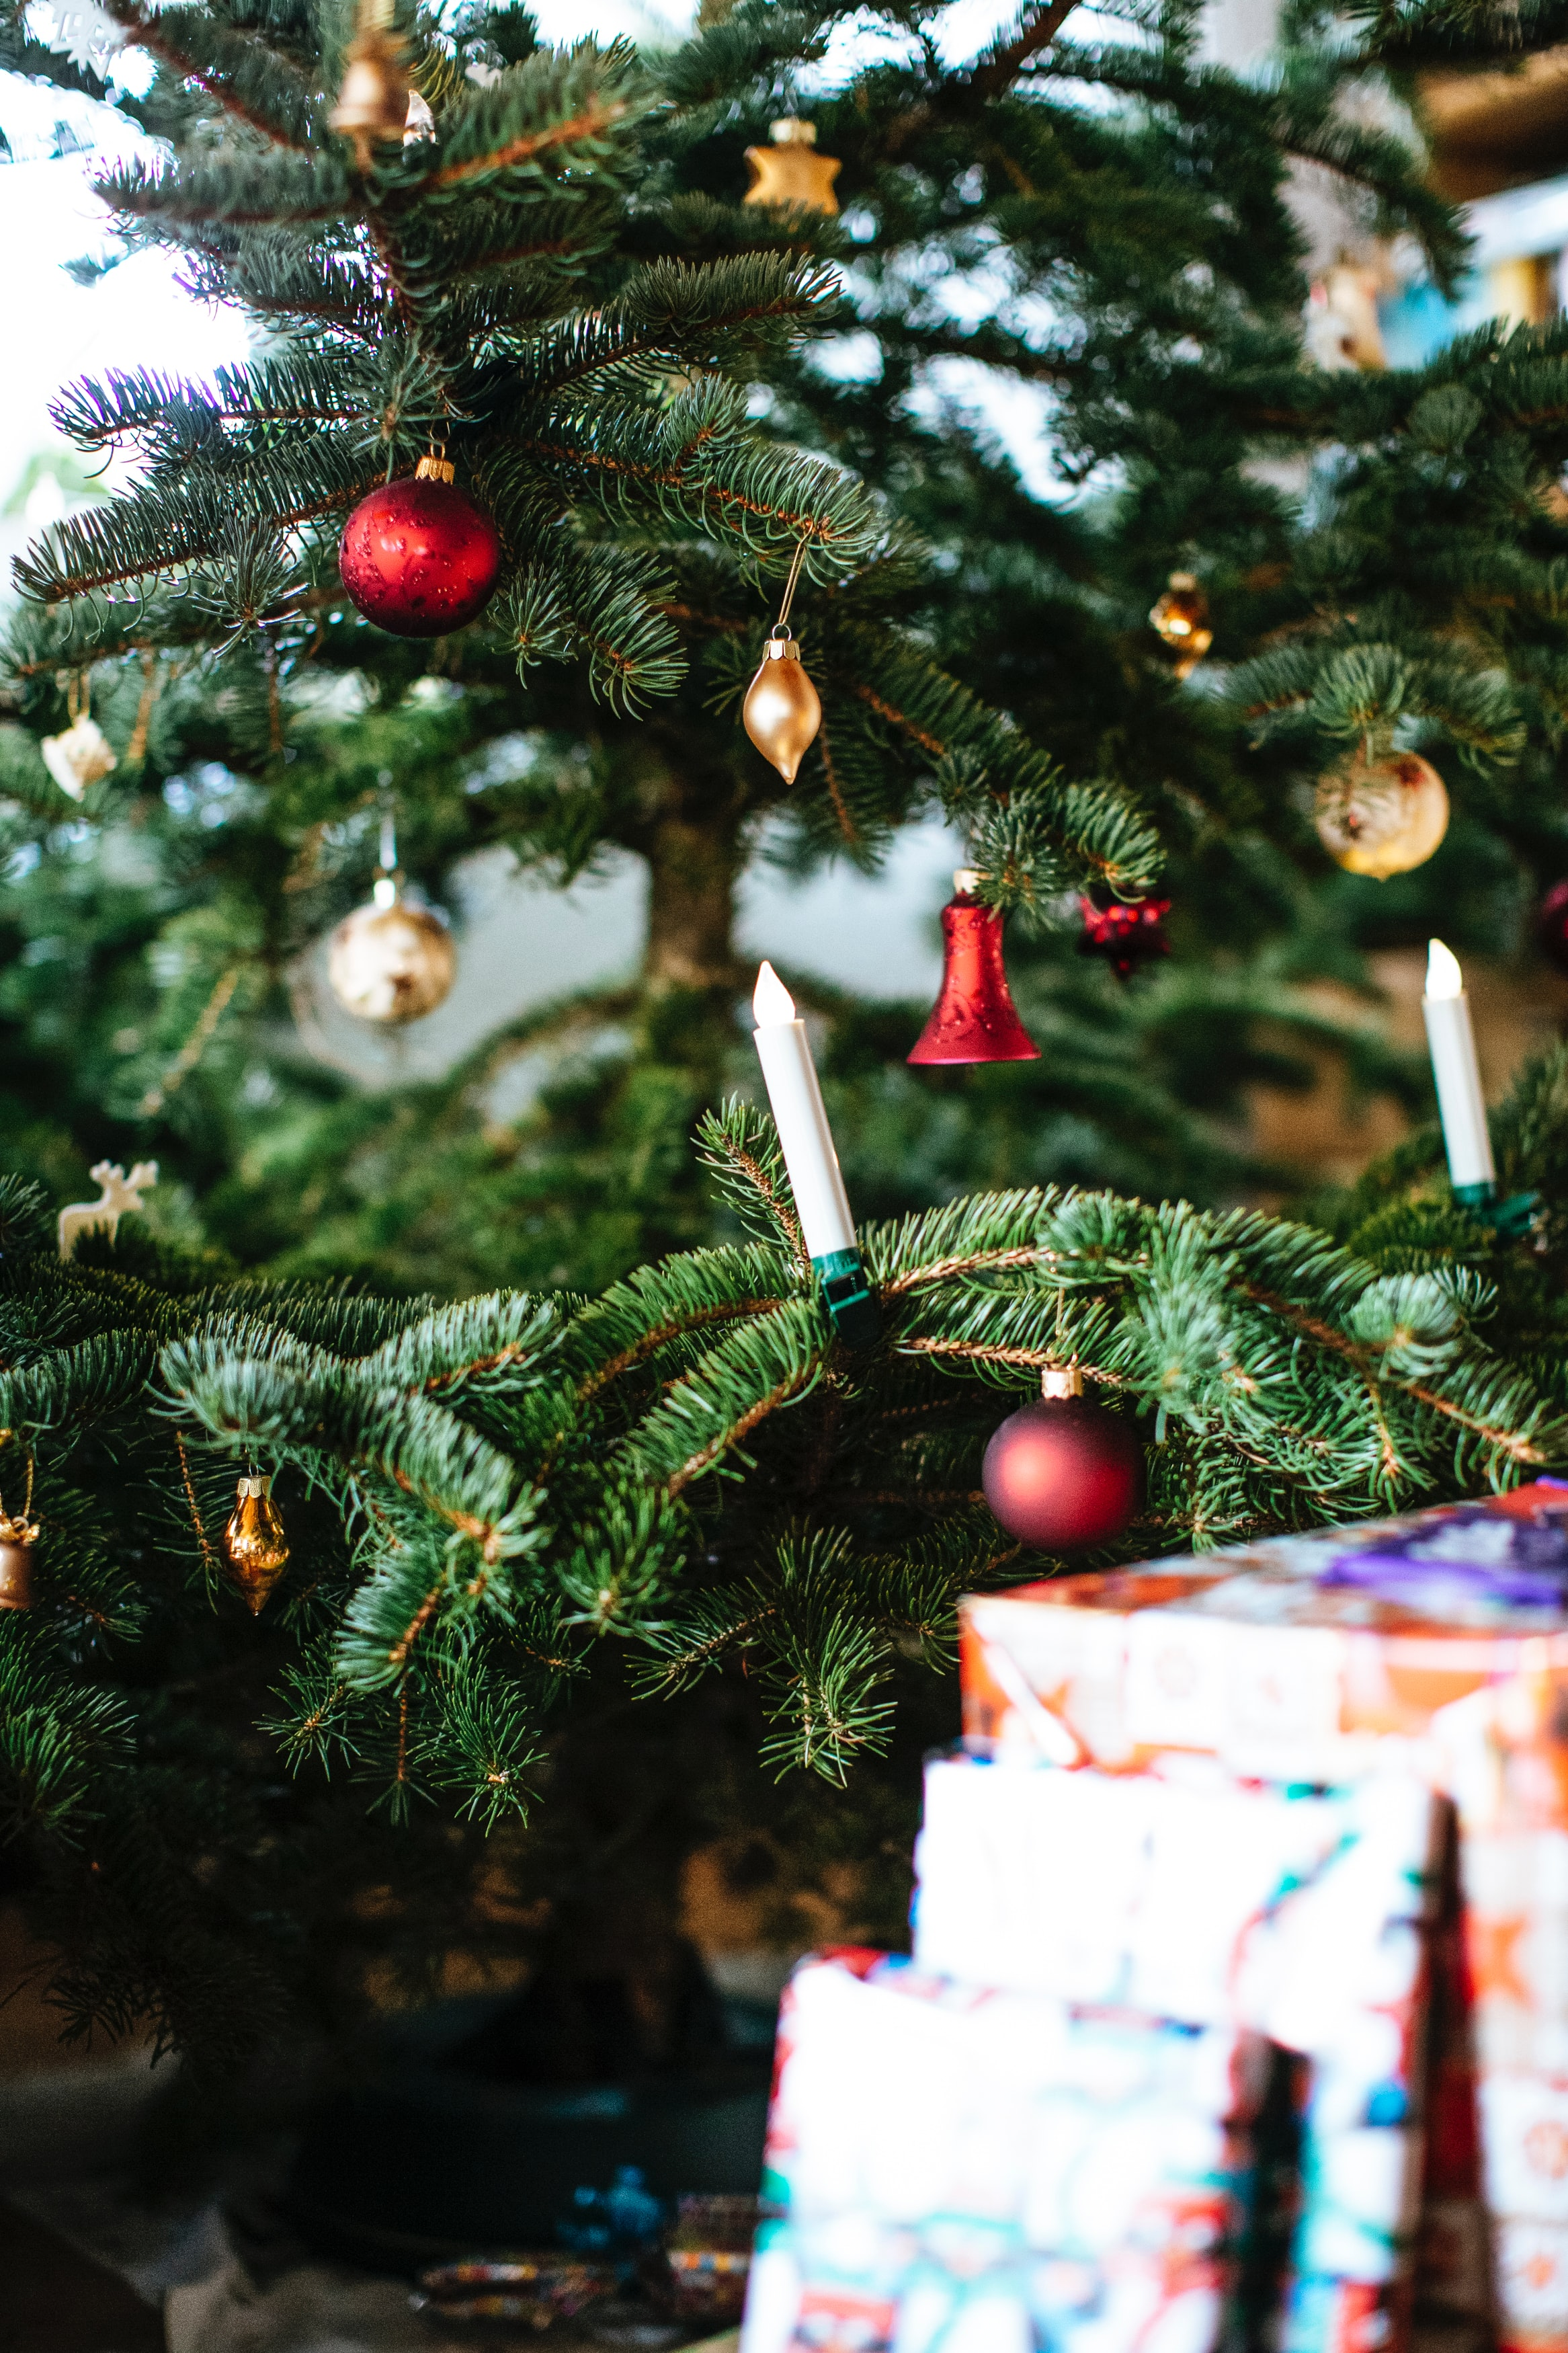 105 Christmas Home Decorating Ideas For the Most Festive Christmas Ever